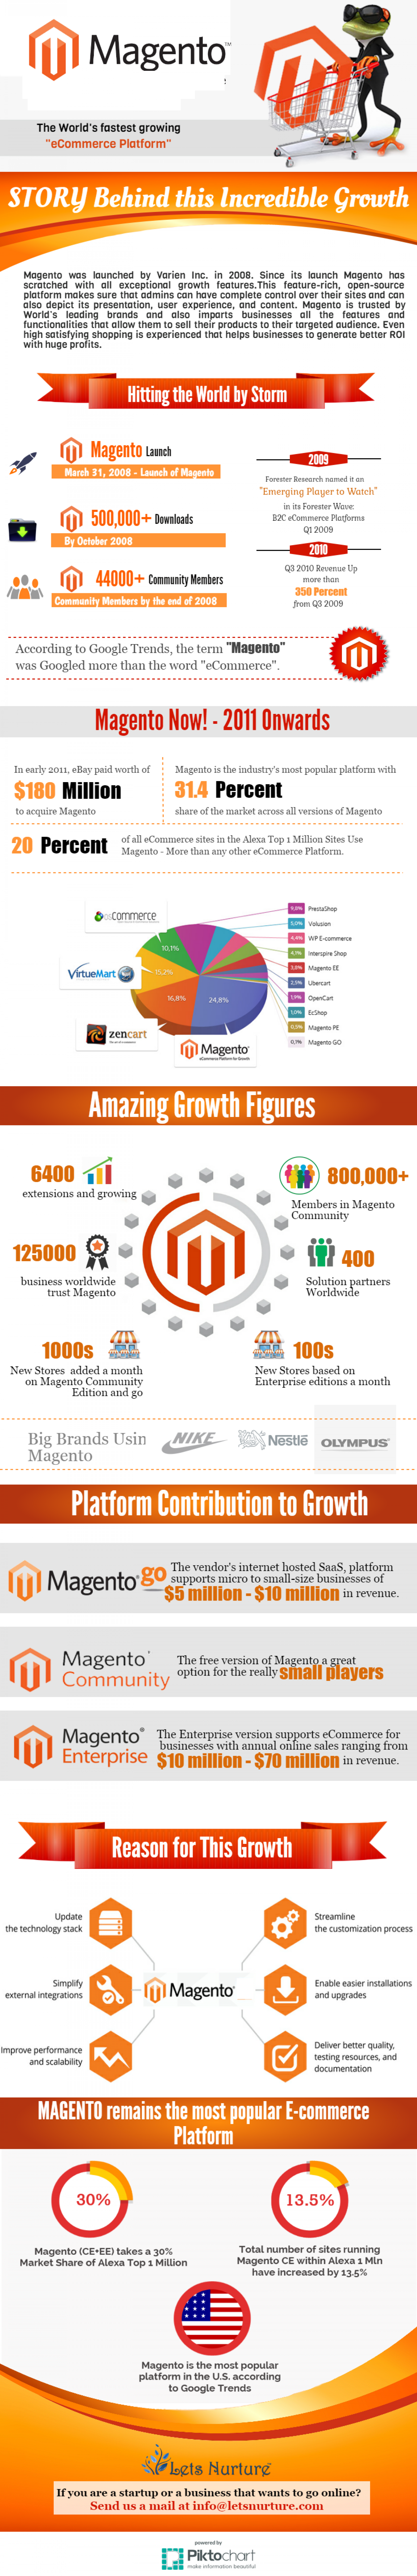 Magento: eCommerce platforms and solutions for selling online Infographic